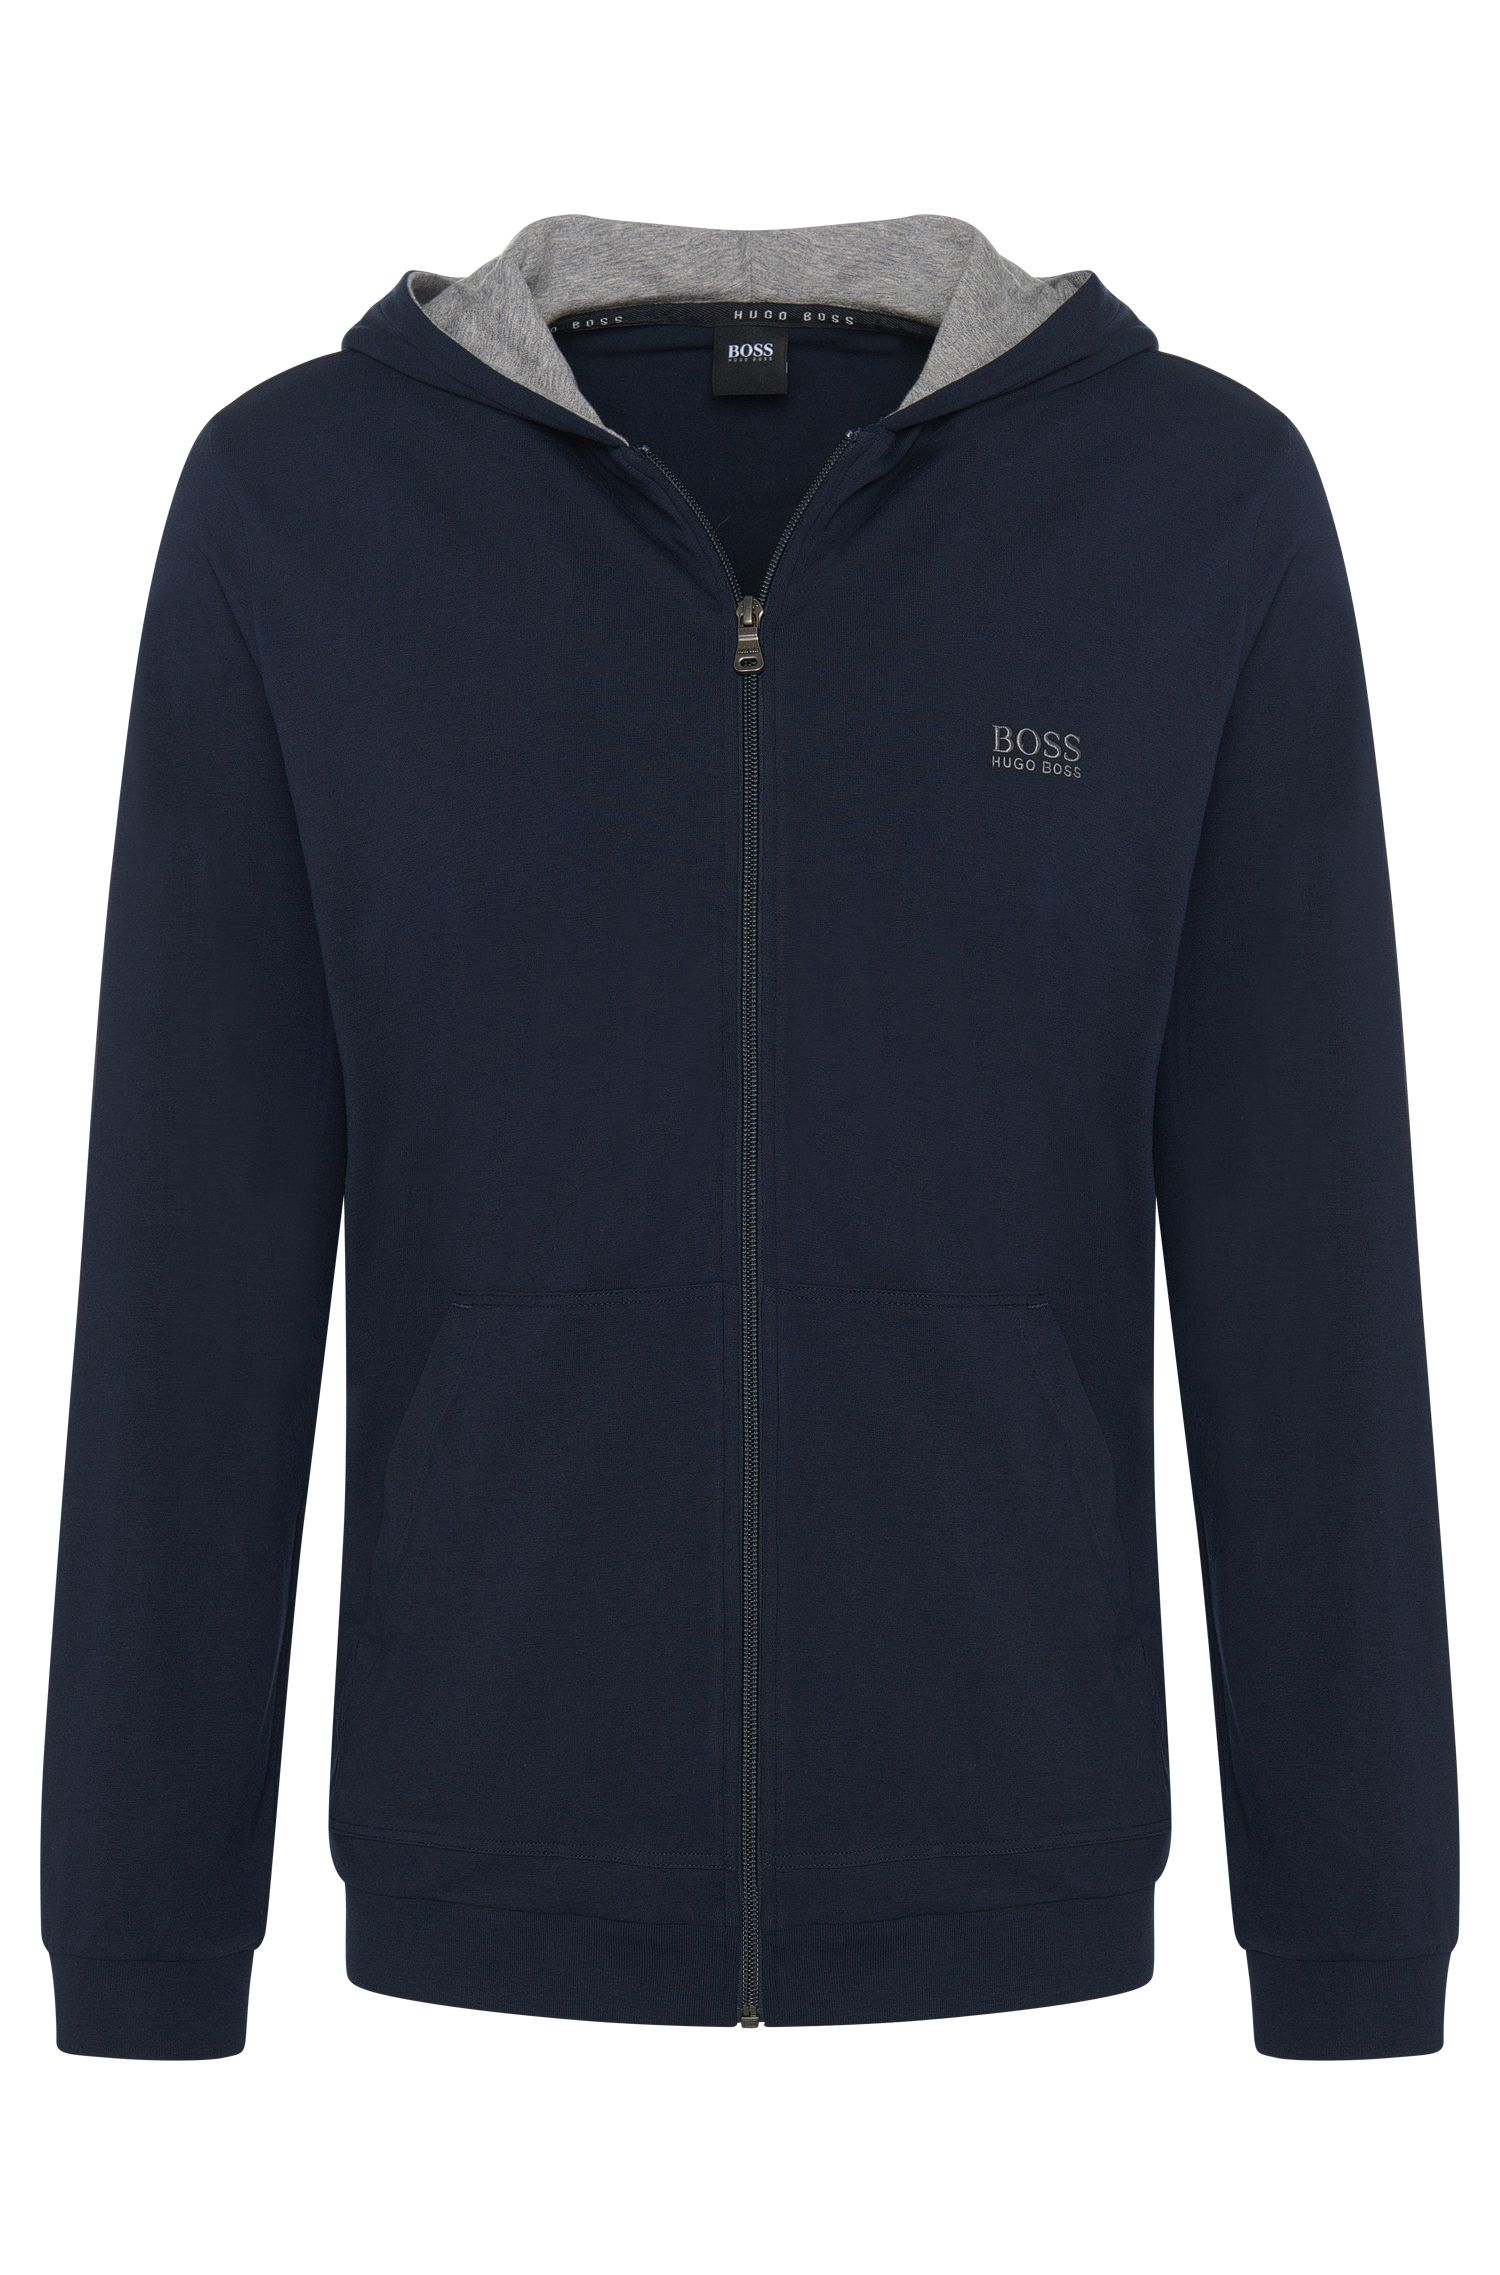 Sweatjas van stretchkatoen met capuchon: 'Jacket Hooded'